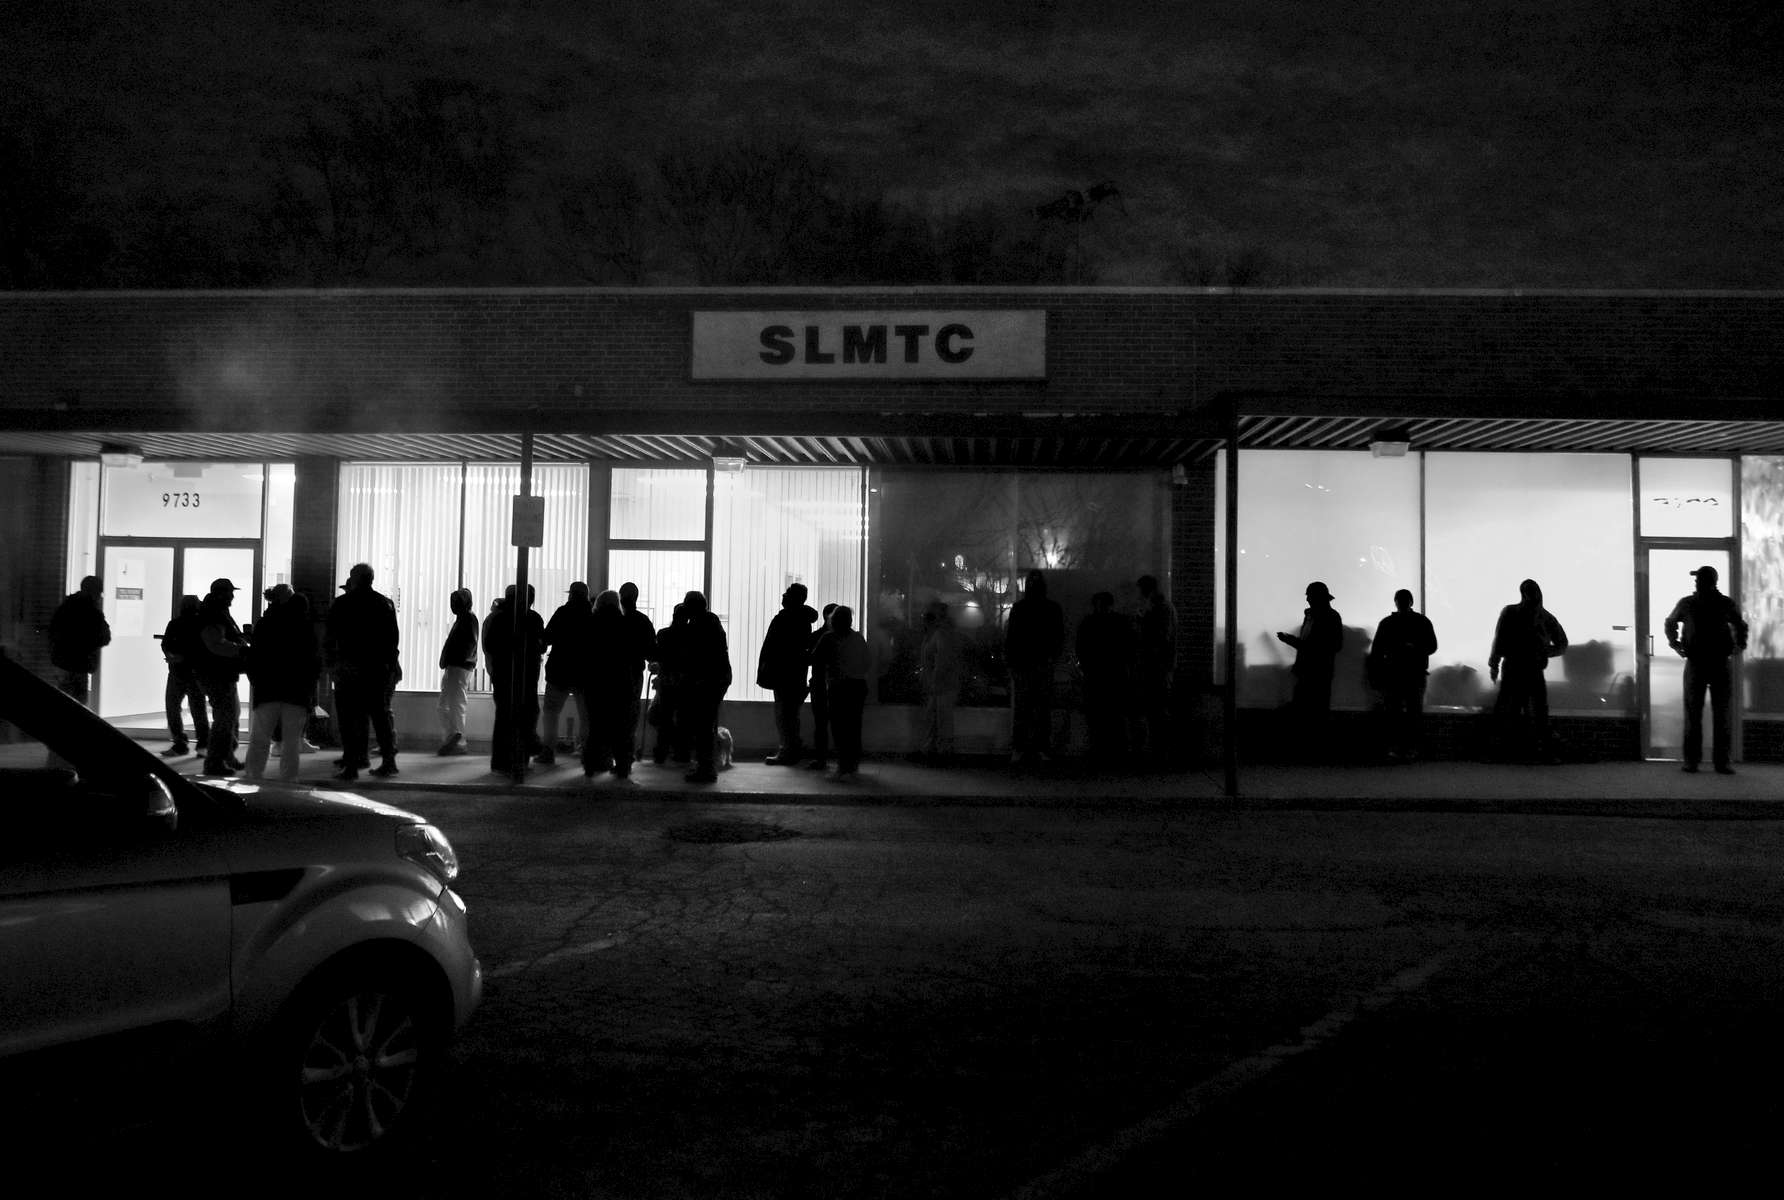 People line up outside the St. Louis Metro Treatment Center at 5 a.m. to get their daily dose of methadone on Monday, April 3, 2017. The clinic opens it's doors to clients at 5:15 am, many in line come early because they need to their dose before going to work for the day.